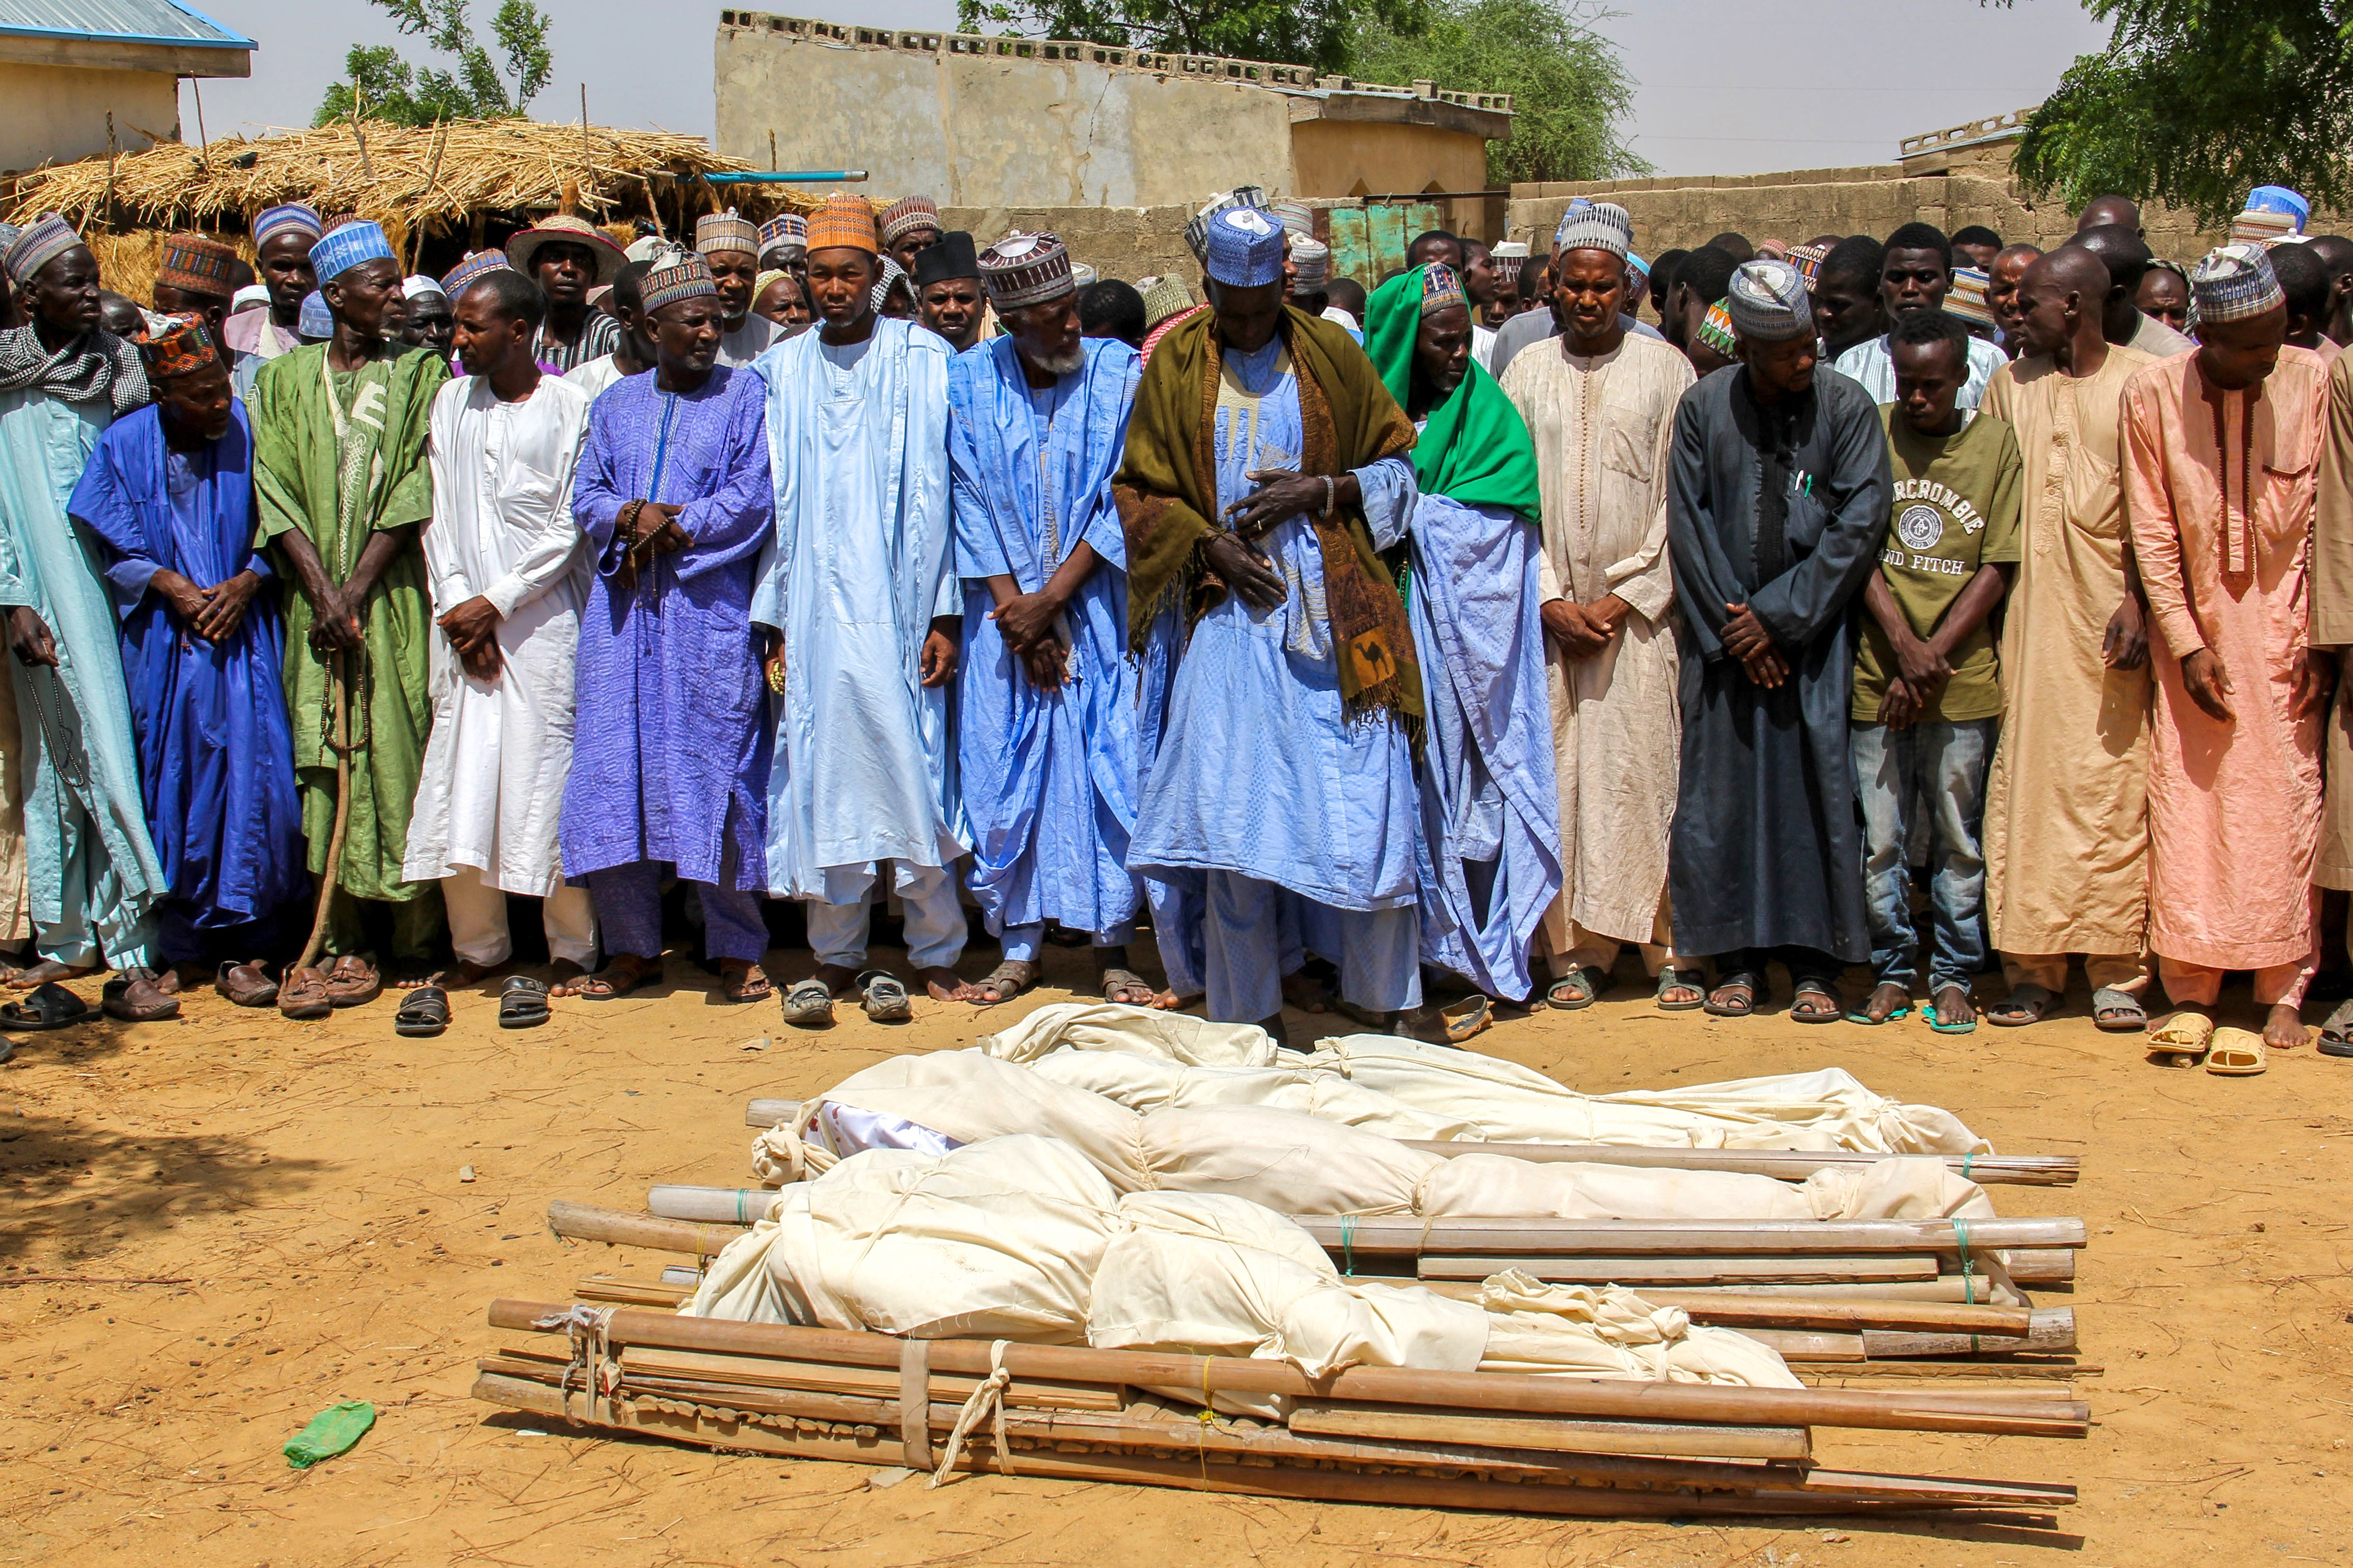 TOPSHOT - Men pray next to coffins during a burial ceremony, after two people were killed by Boko Haram fighters in Dalori camp for internally displaced people, near Maiduguri, on July 26, 2019. - Two people were killed and several wounded when Boko Haram fighters raided a camp for people displaced by the jihadist conflict in northeast Nigeria, emergency services said on July 26, 2019. Dozens of Islamist militants on motorcycles and two motorised rickshaws stormed into Dalori camp on Thursday, shooting people and looting food supplies after overrunning a nearby military base. (Photo by Audu MARTE / AFP) (Photo credit should read AUDU MARTE/AFP/Getty Images)